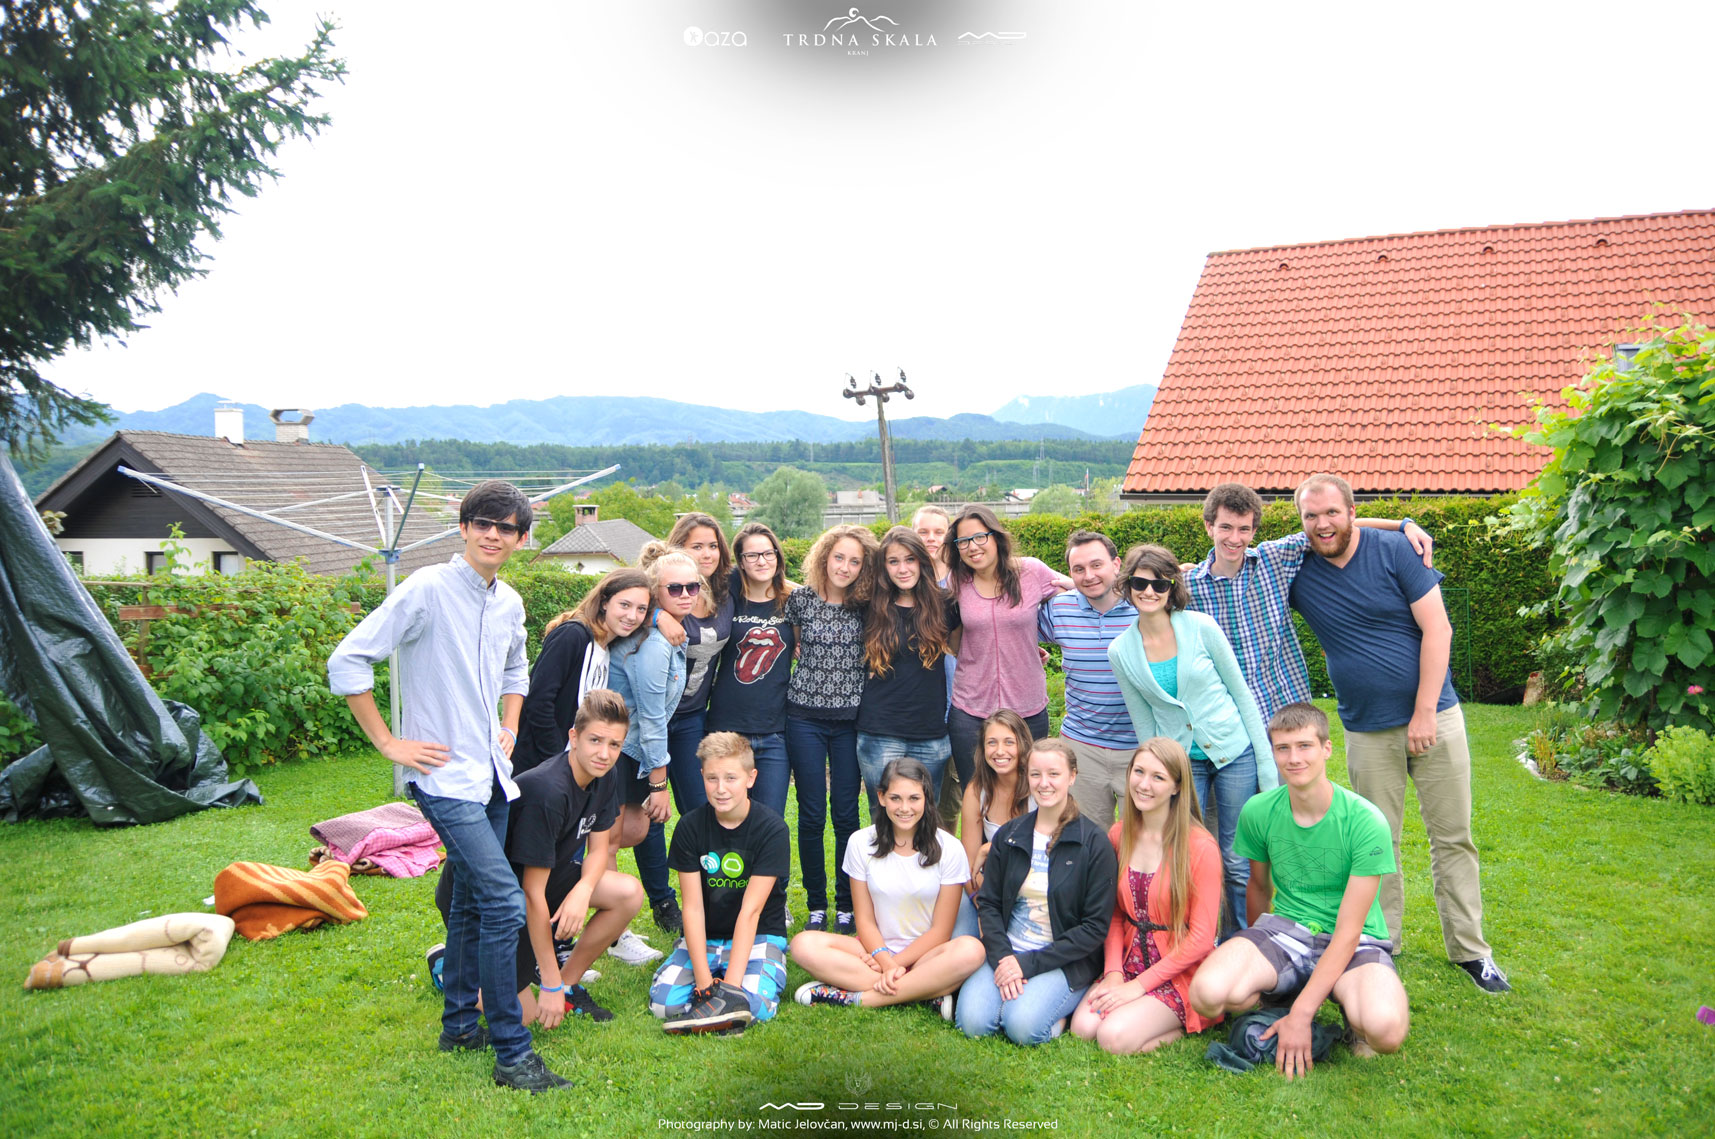 DSC01771 - English Camp 2014 Kranj - Photos